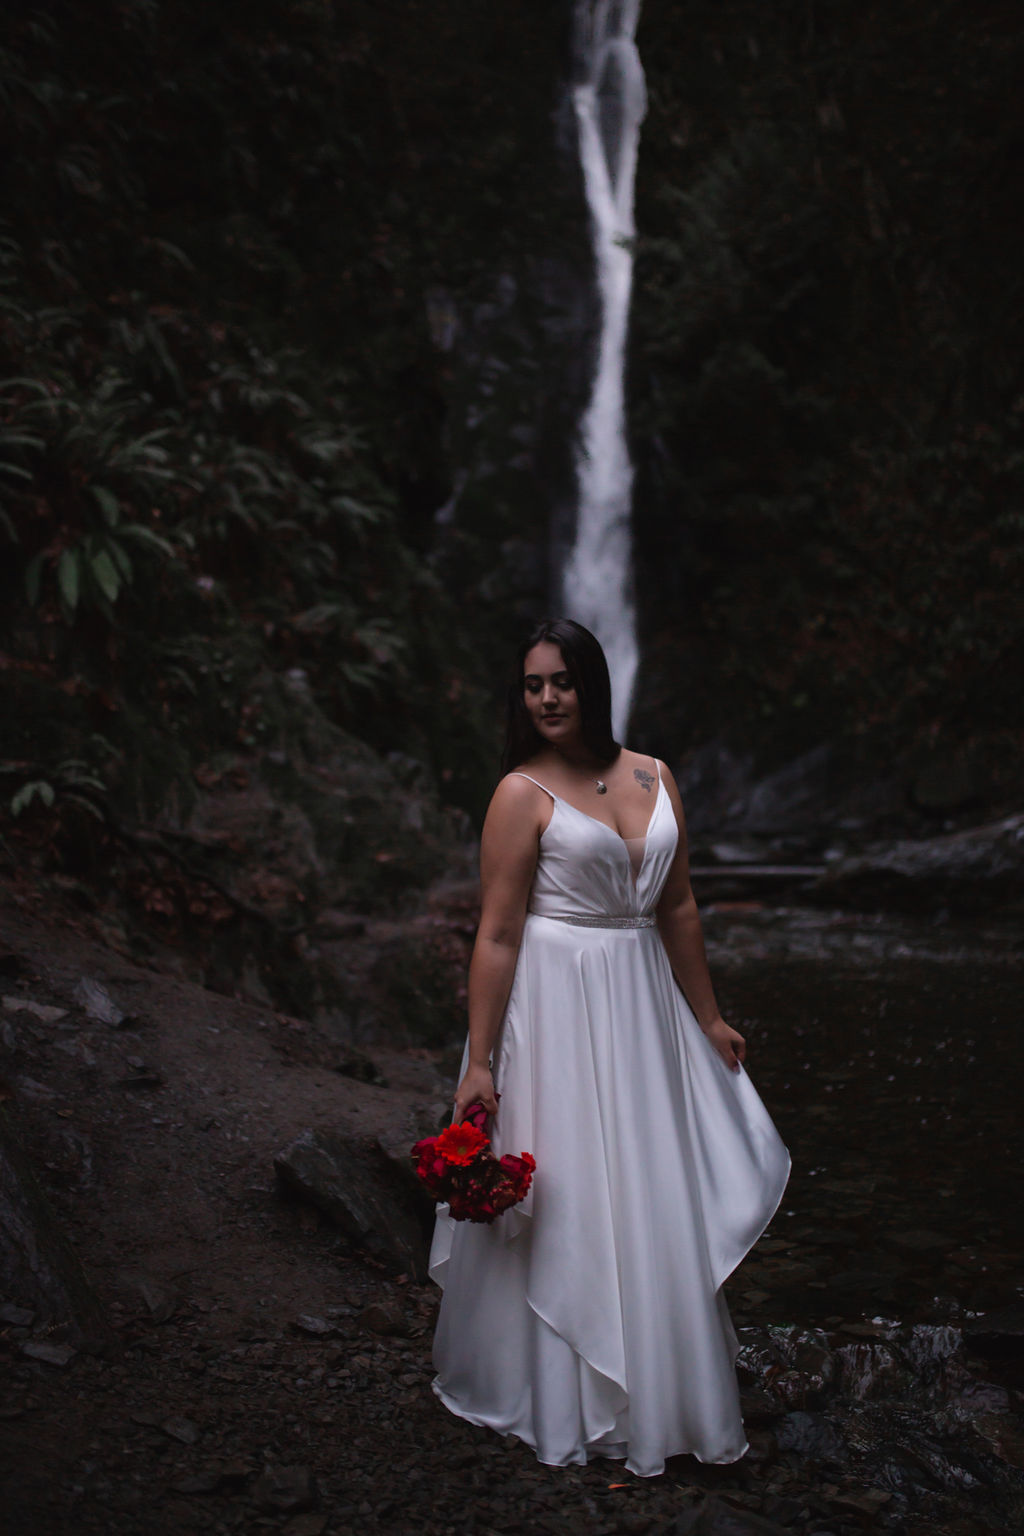 Waterfall Bride with Red floral bouquet